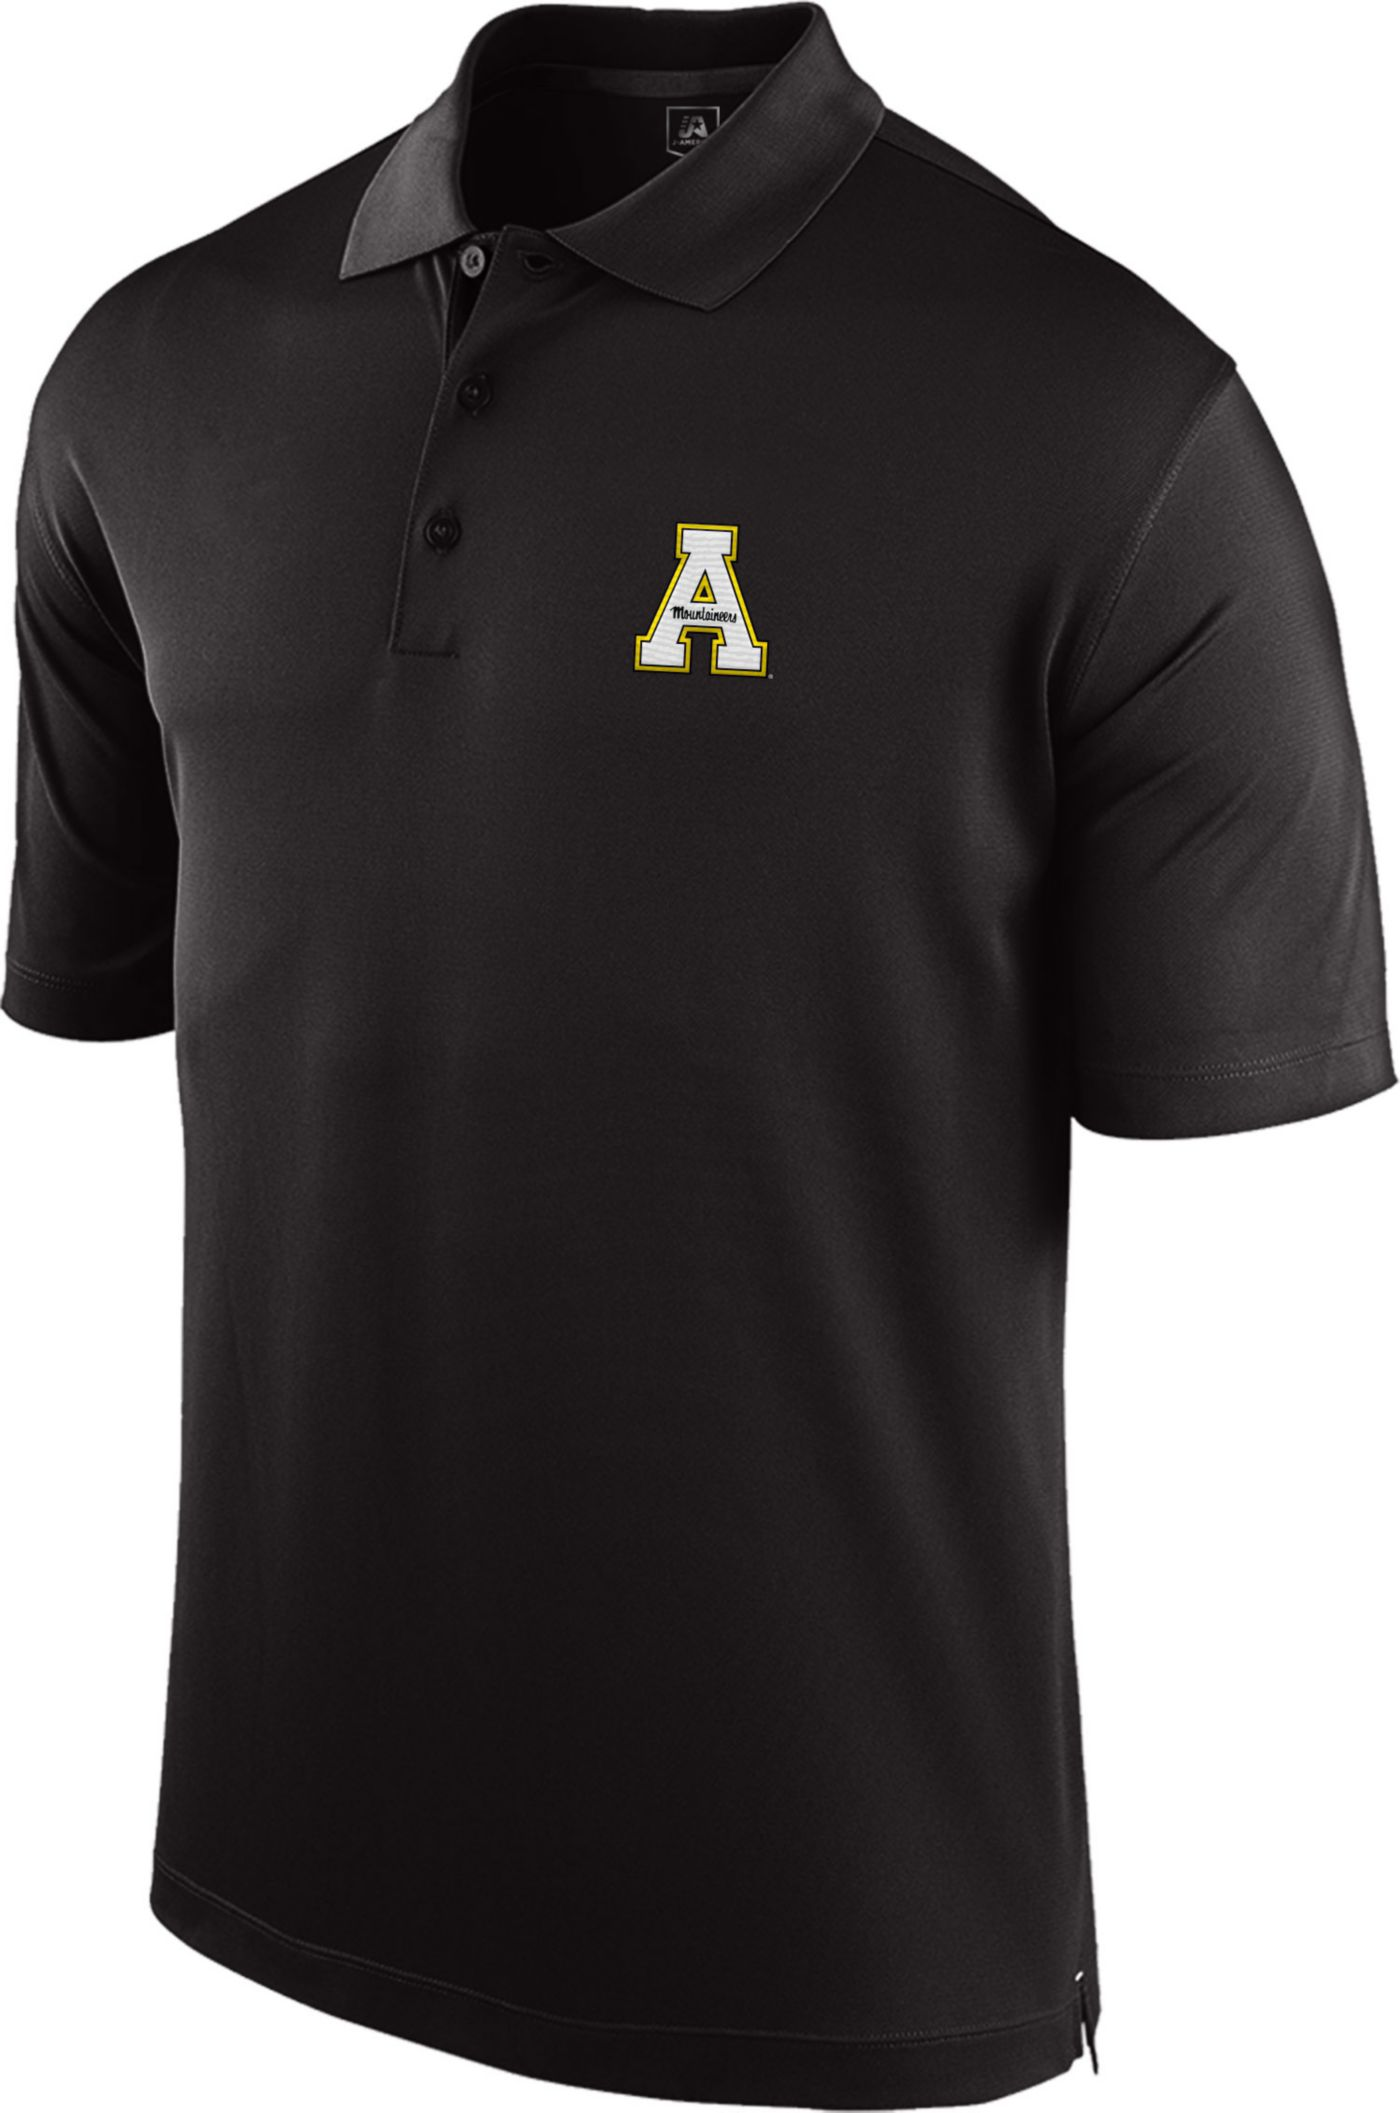 Top of the World Men's Appalachian State Mountaineers Black Spector Polo